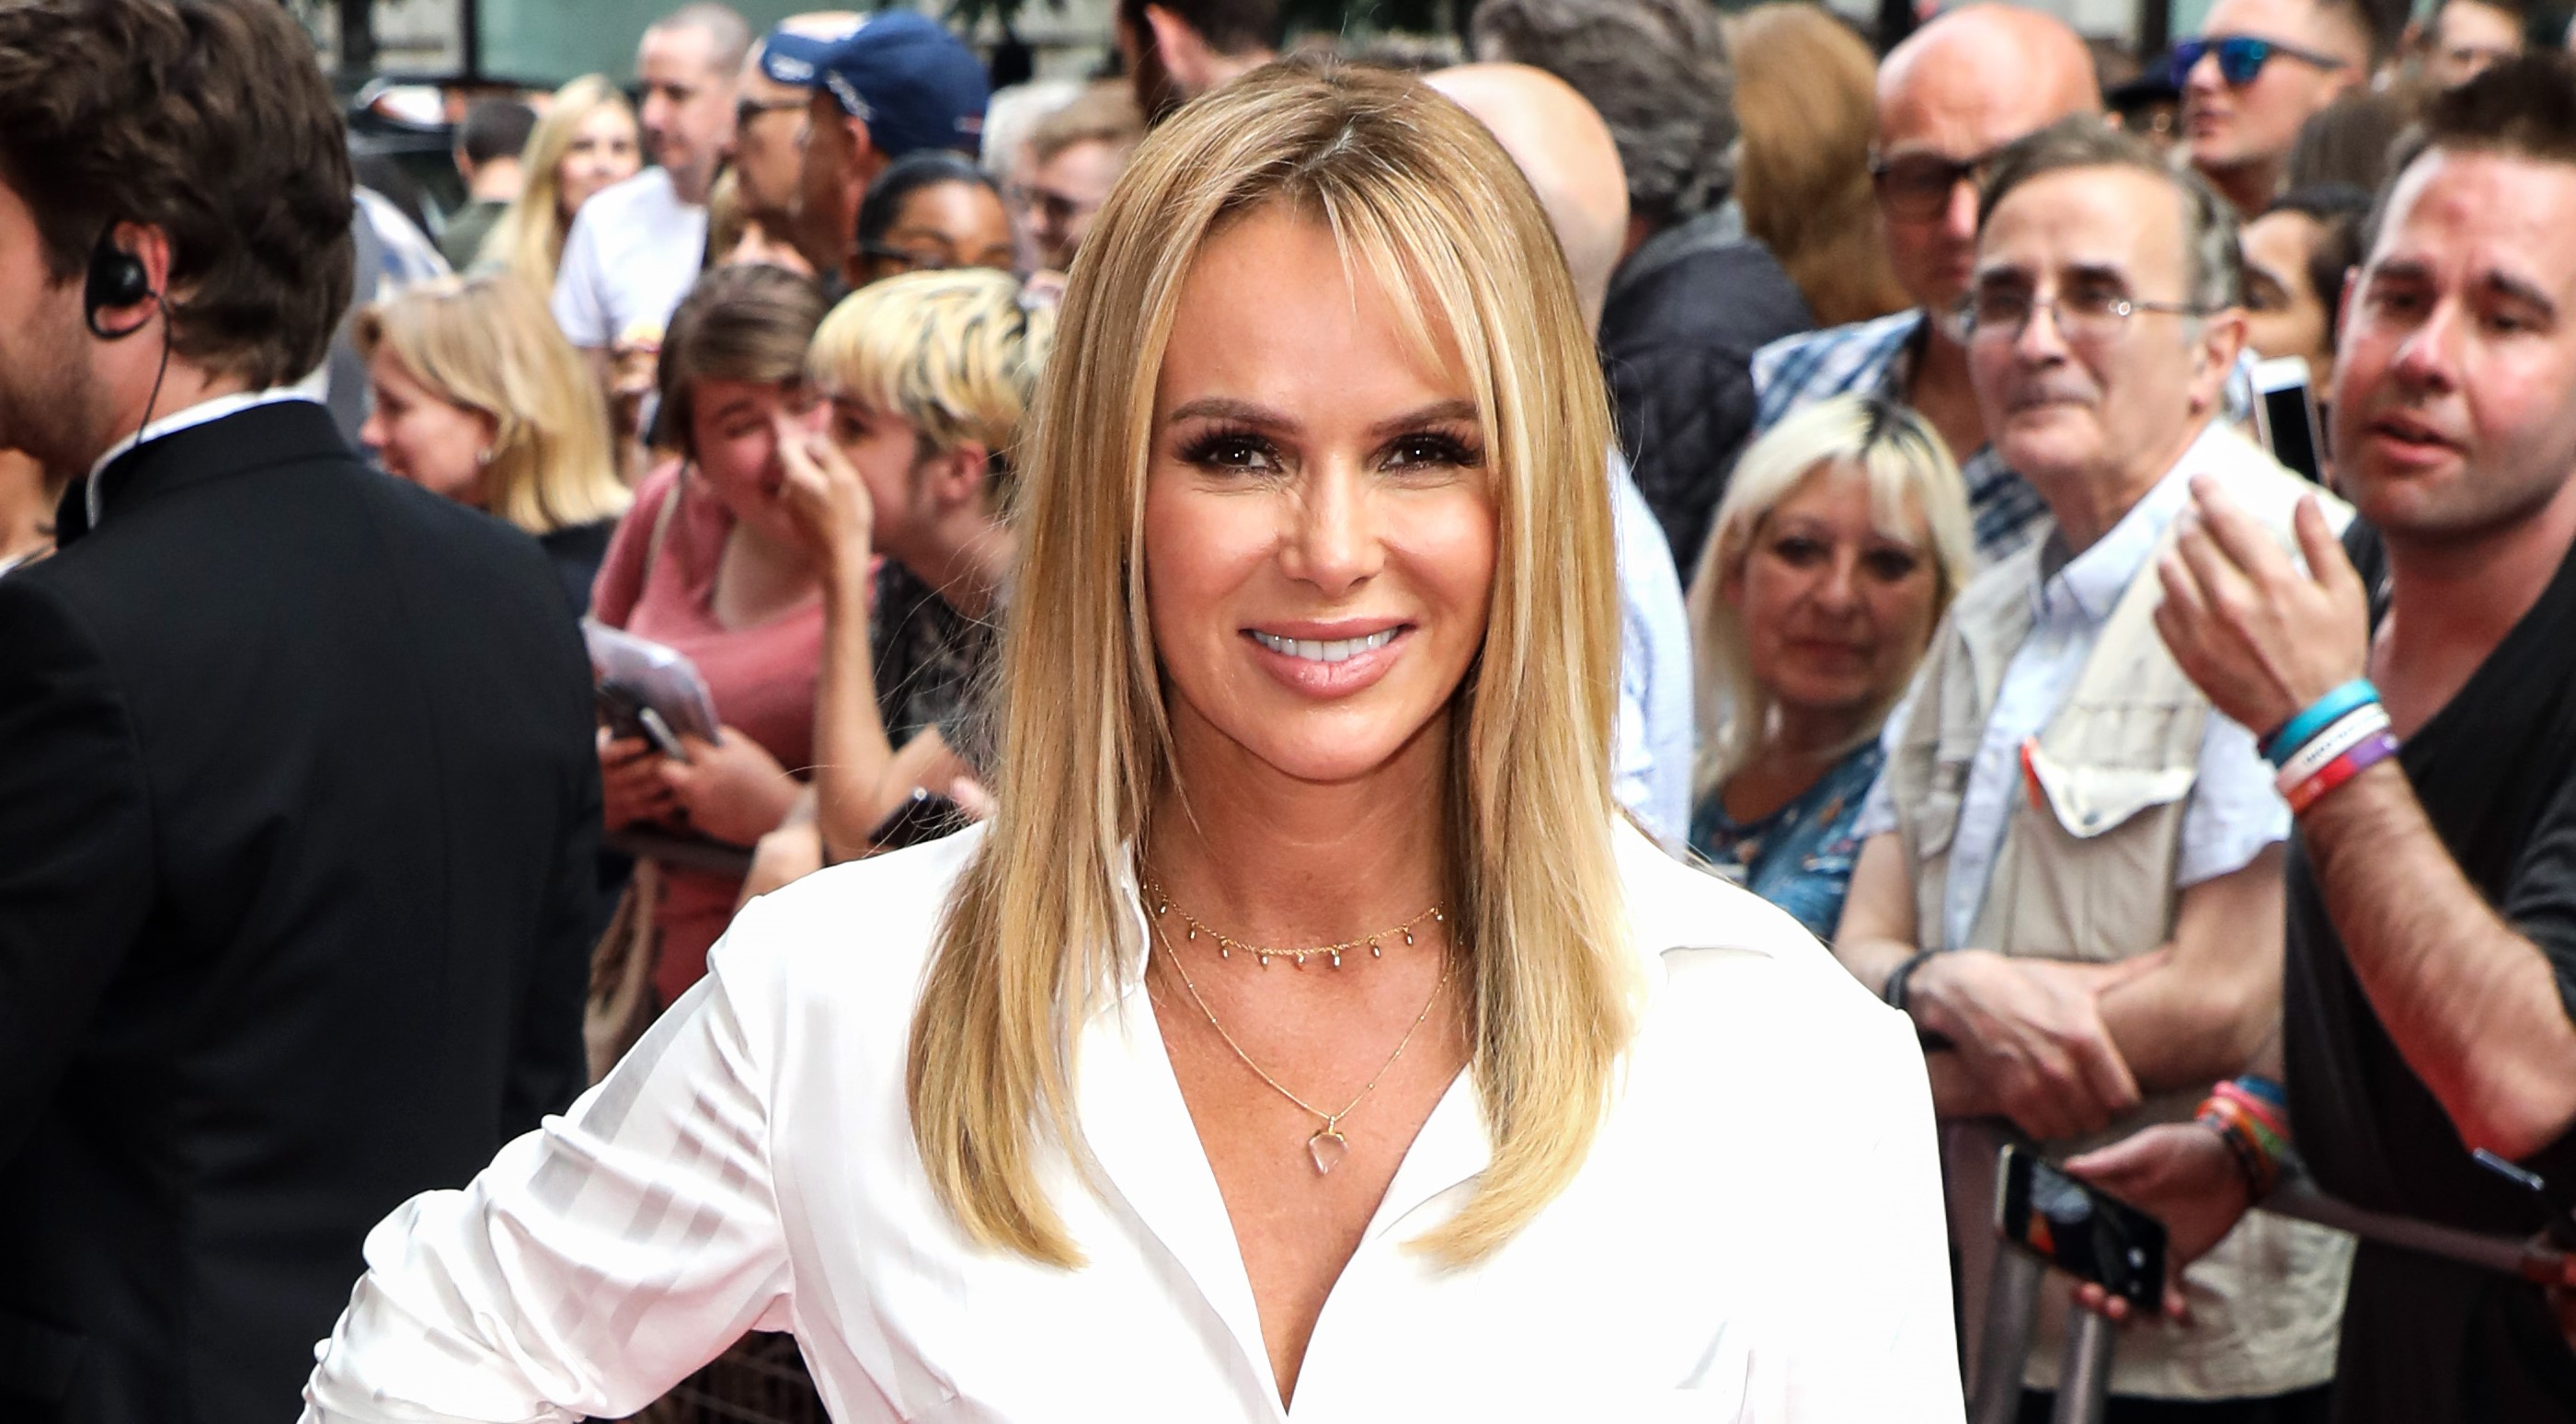 Amanda Holden defends her revealing Britain's Got Talent outfits